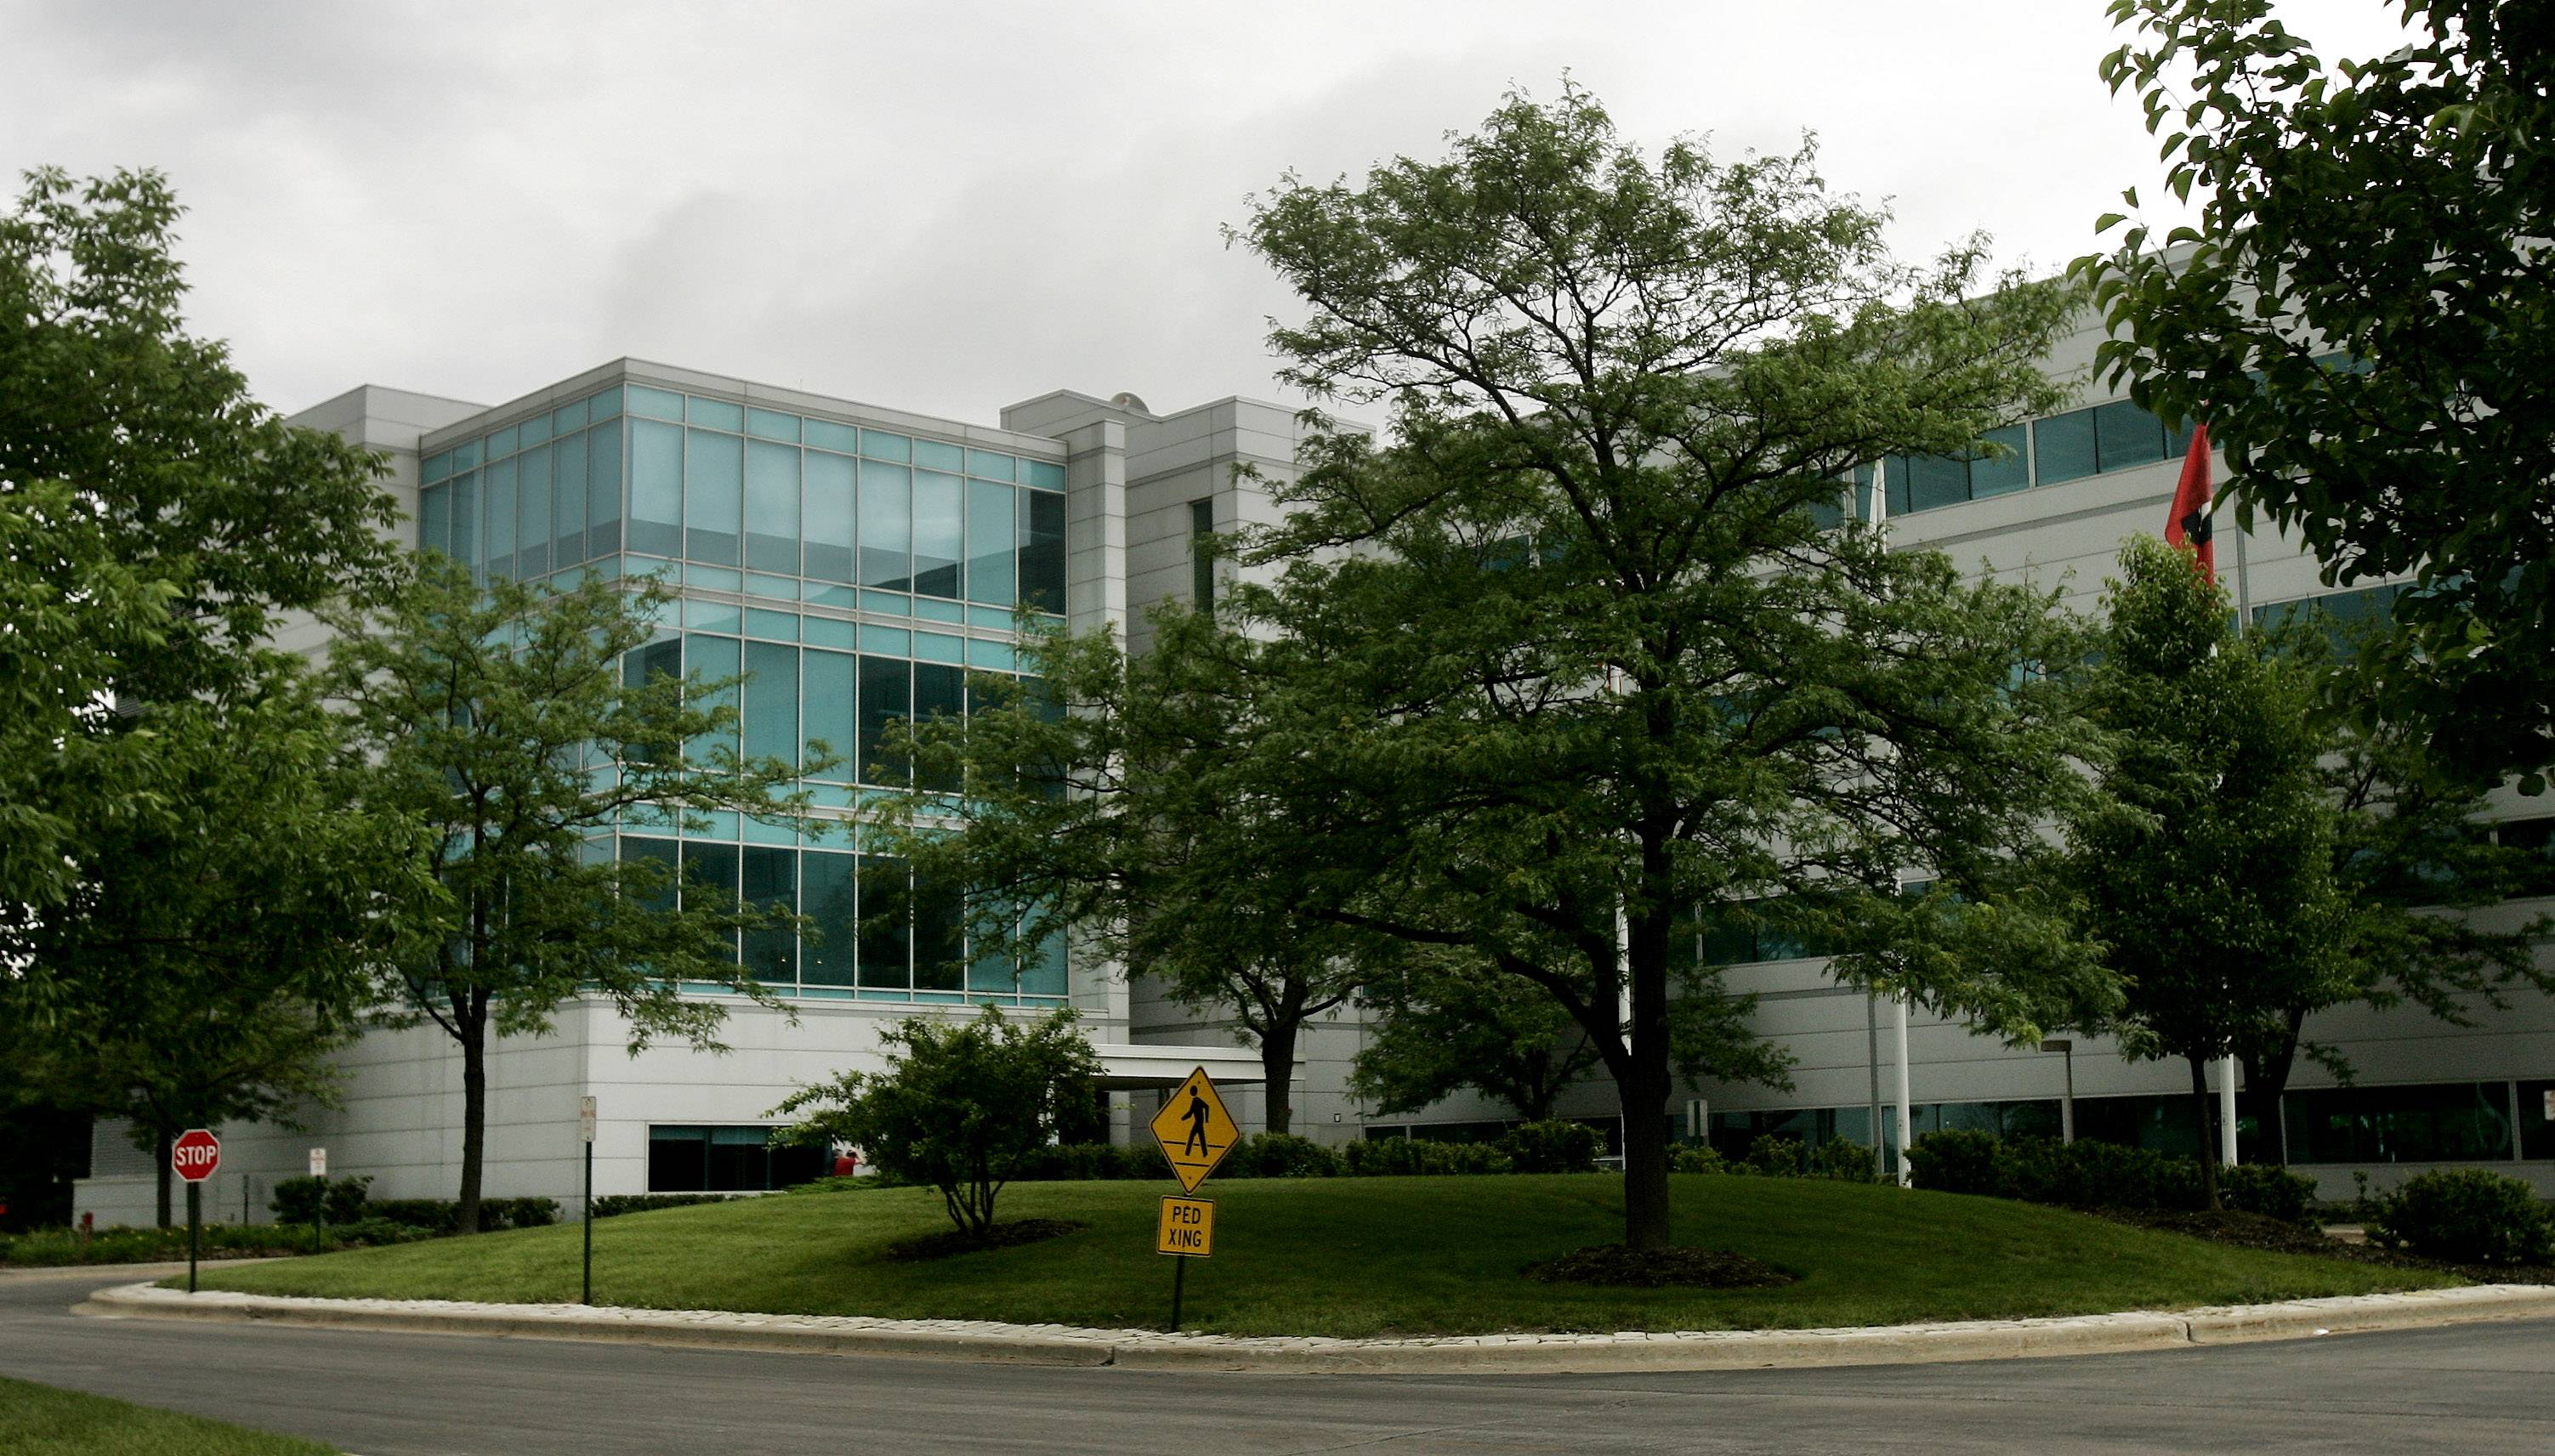 Motorola Mobility's former campus in Libertyville.